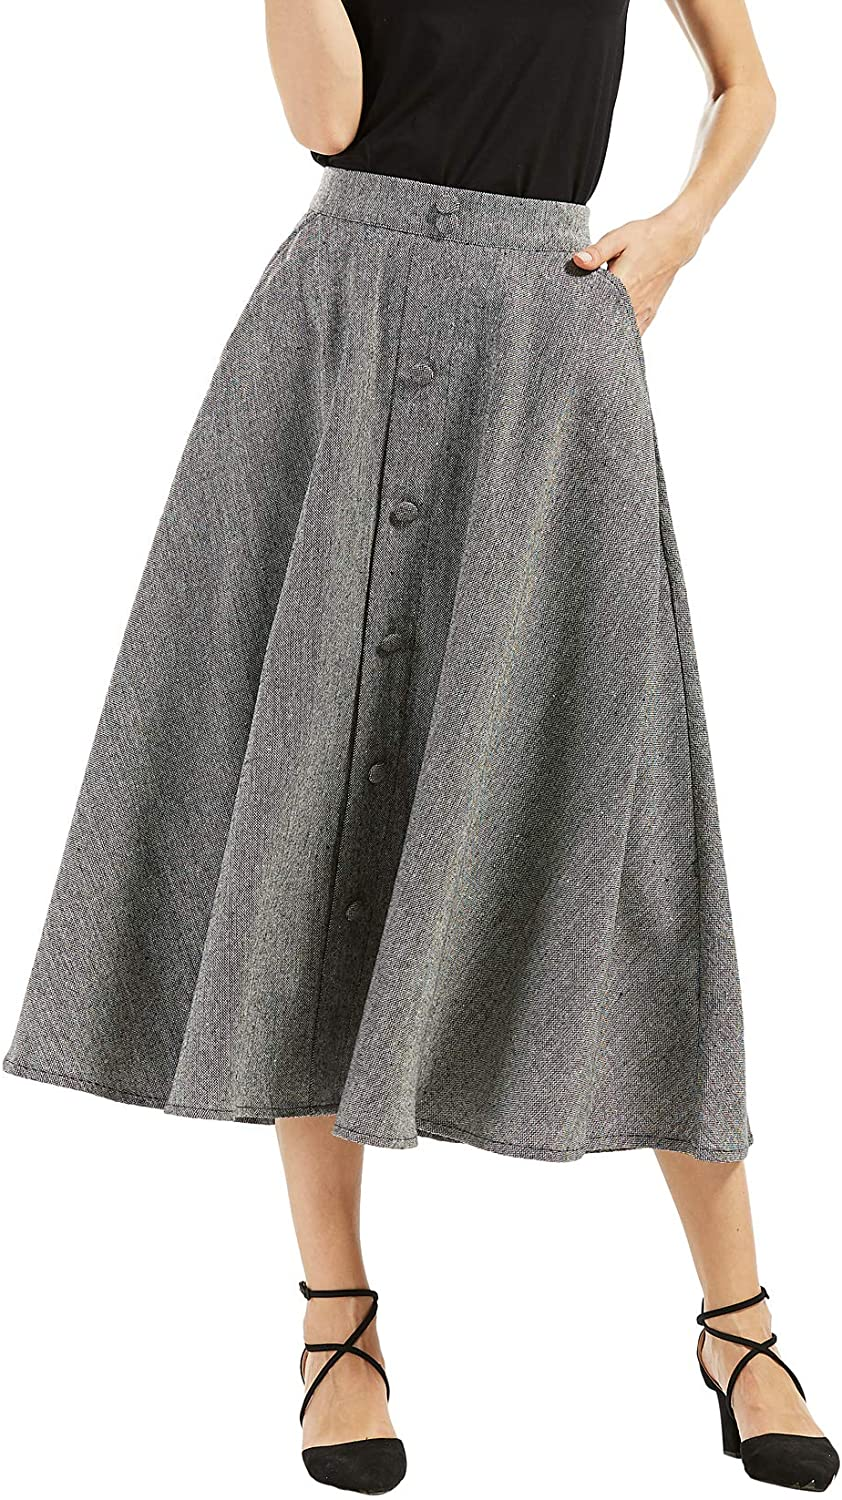 50s Skirt Styles | Poodle Skirts, Circle Skirts, Pencil Skirts 1950s chouyatou Womans Vintage High Waist Front Button Long Skirt with Pockets $35.98 AT vintagedancer.com